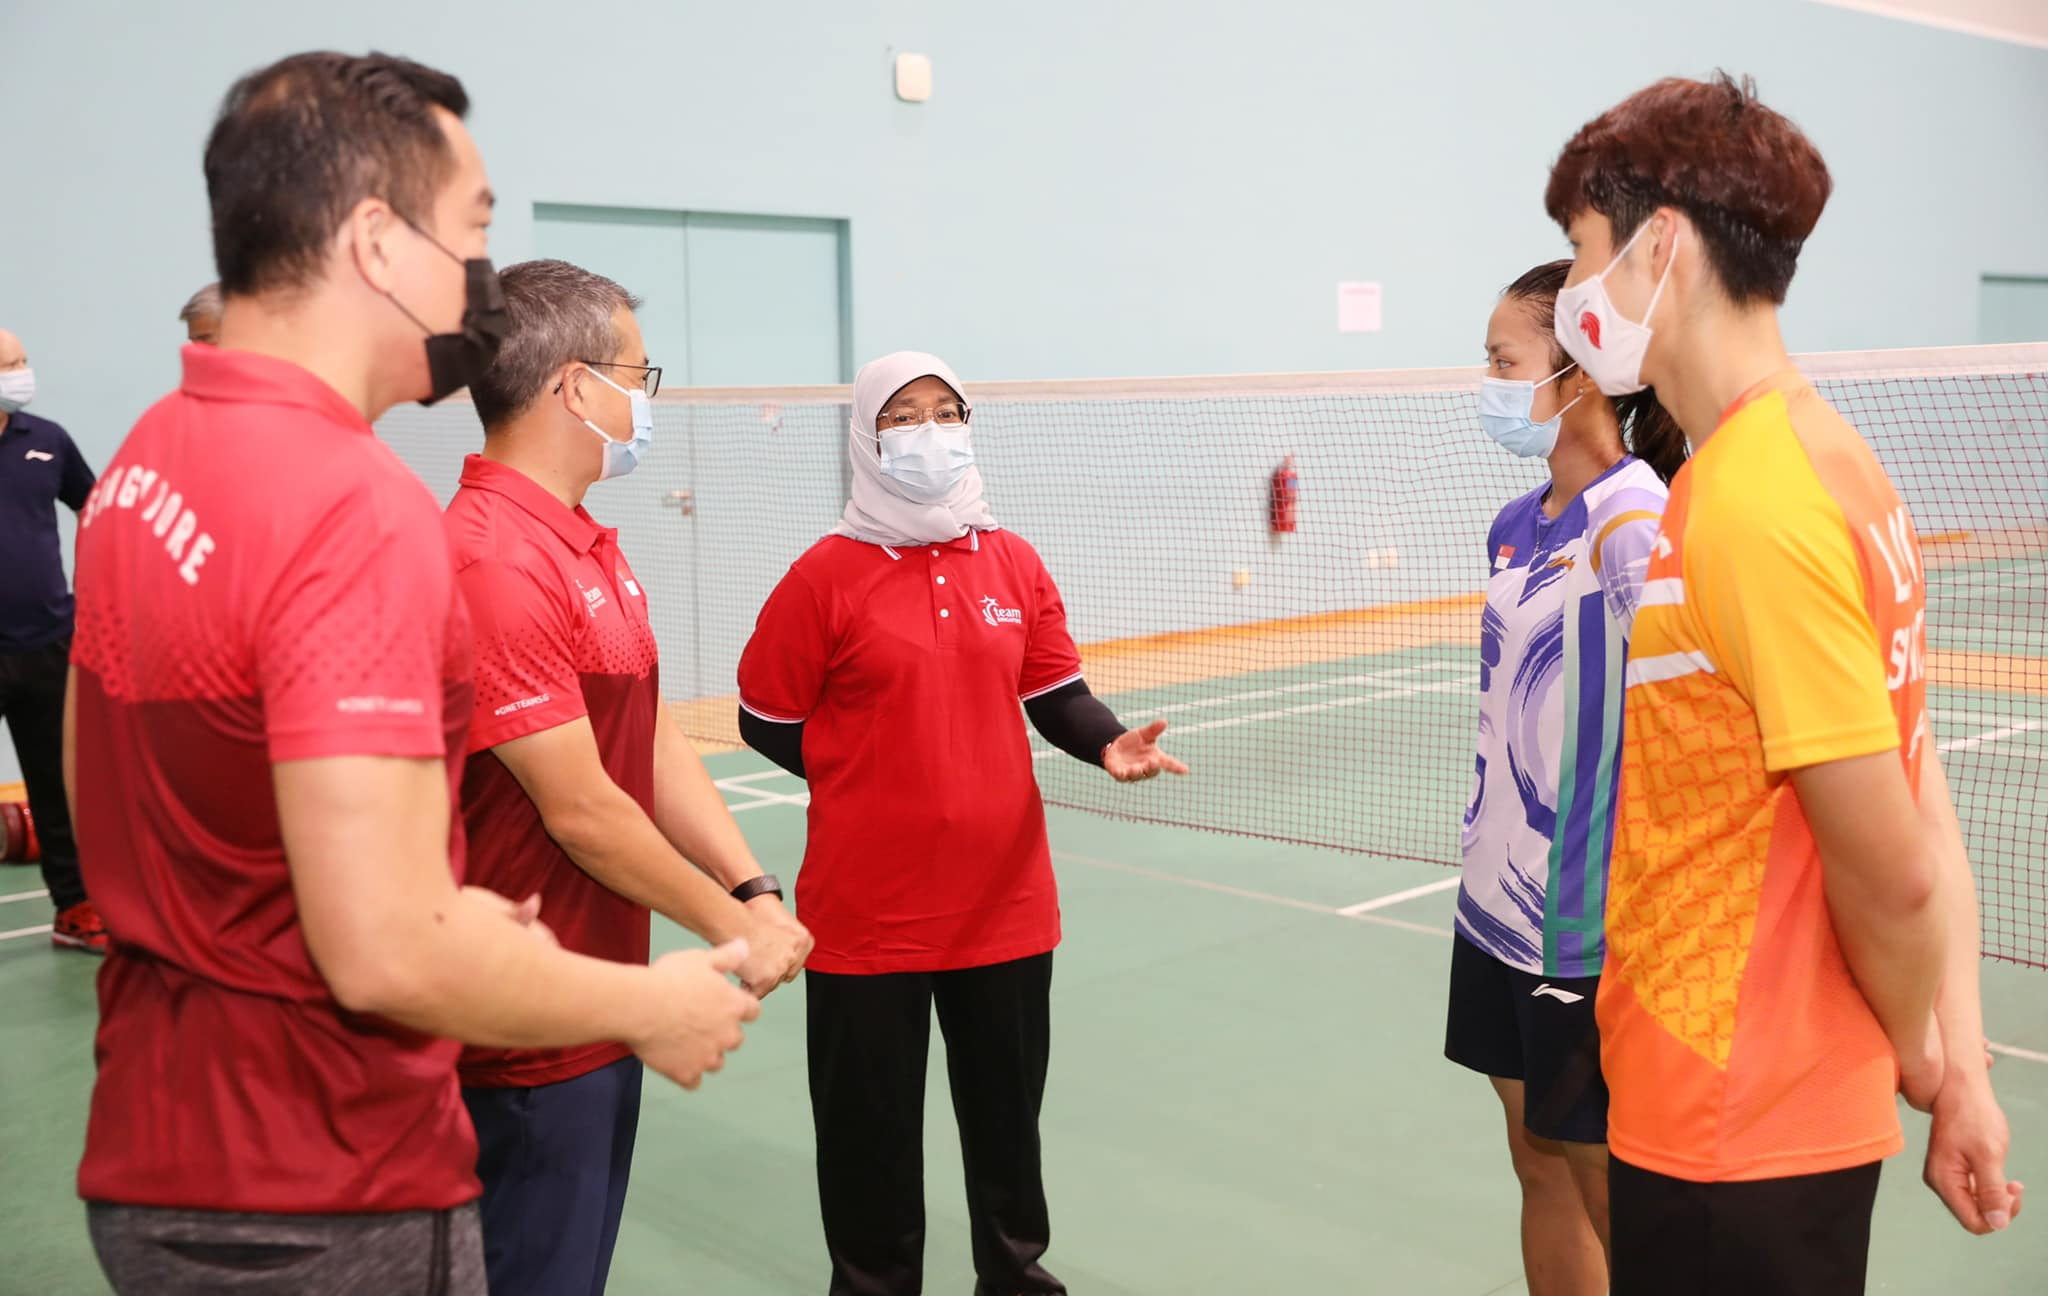 Bringing Presidential cheer to TeamSG's Olympic-bound athletes